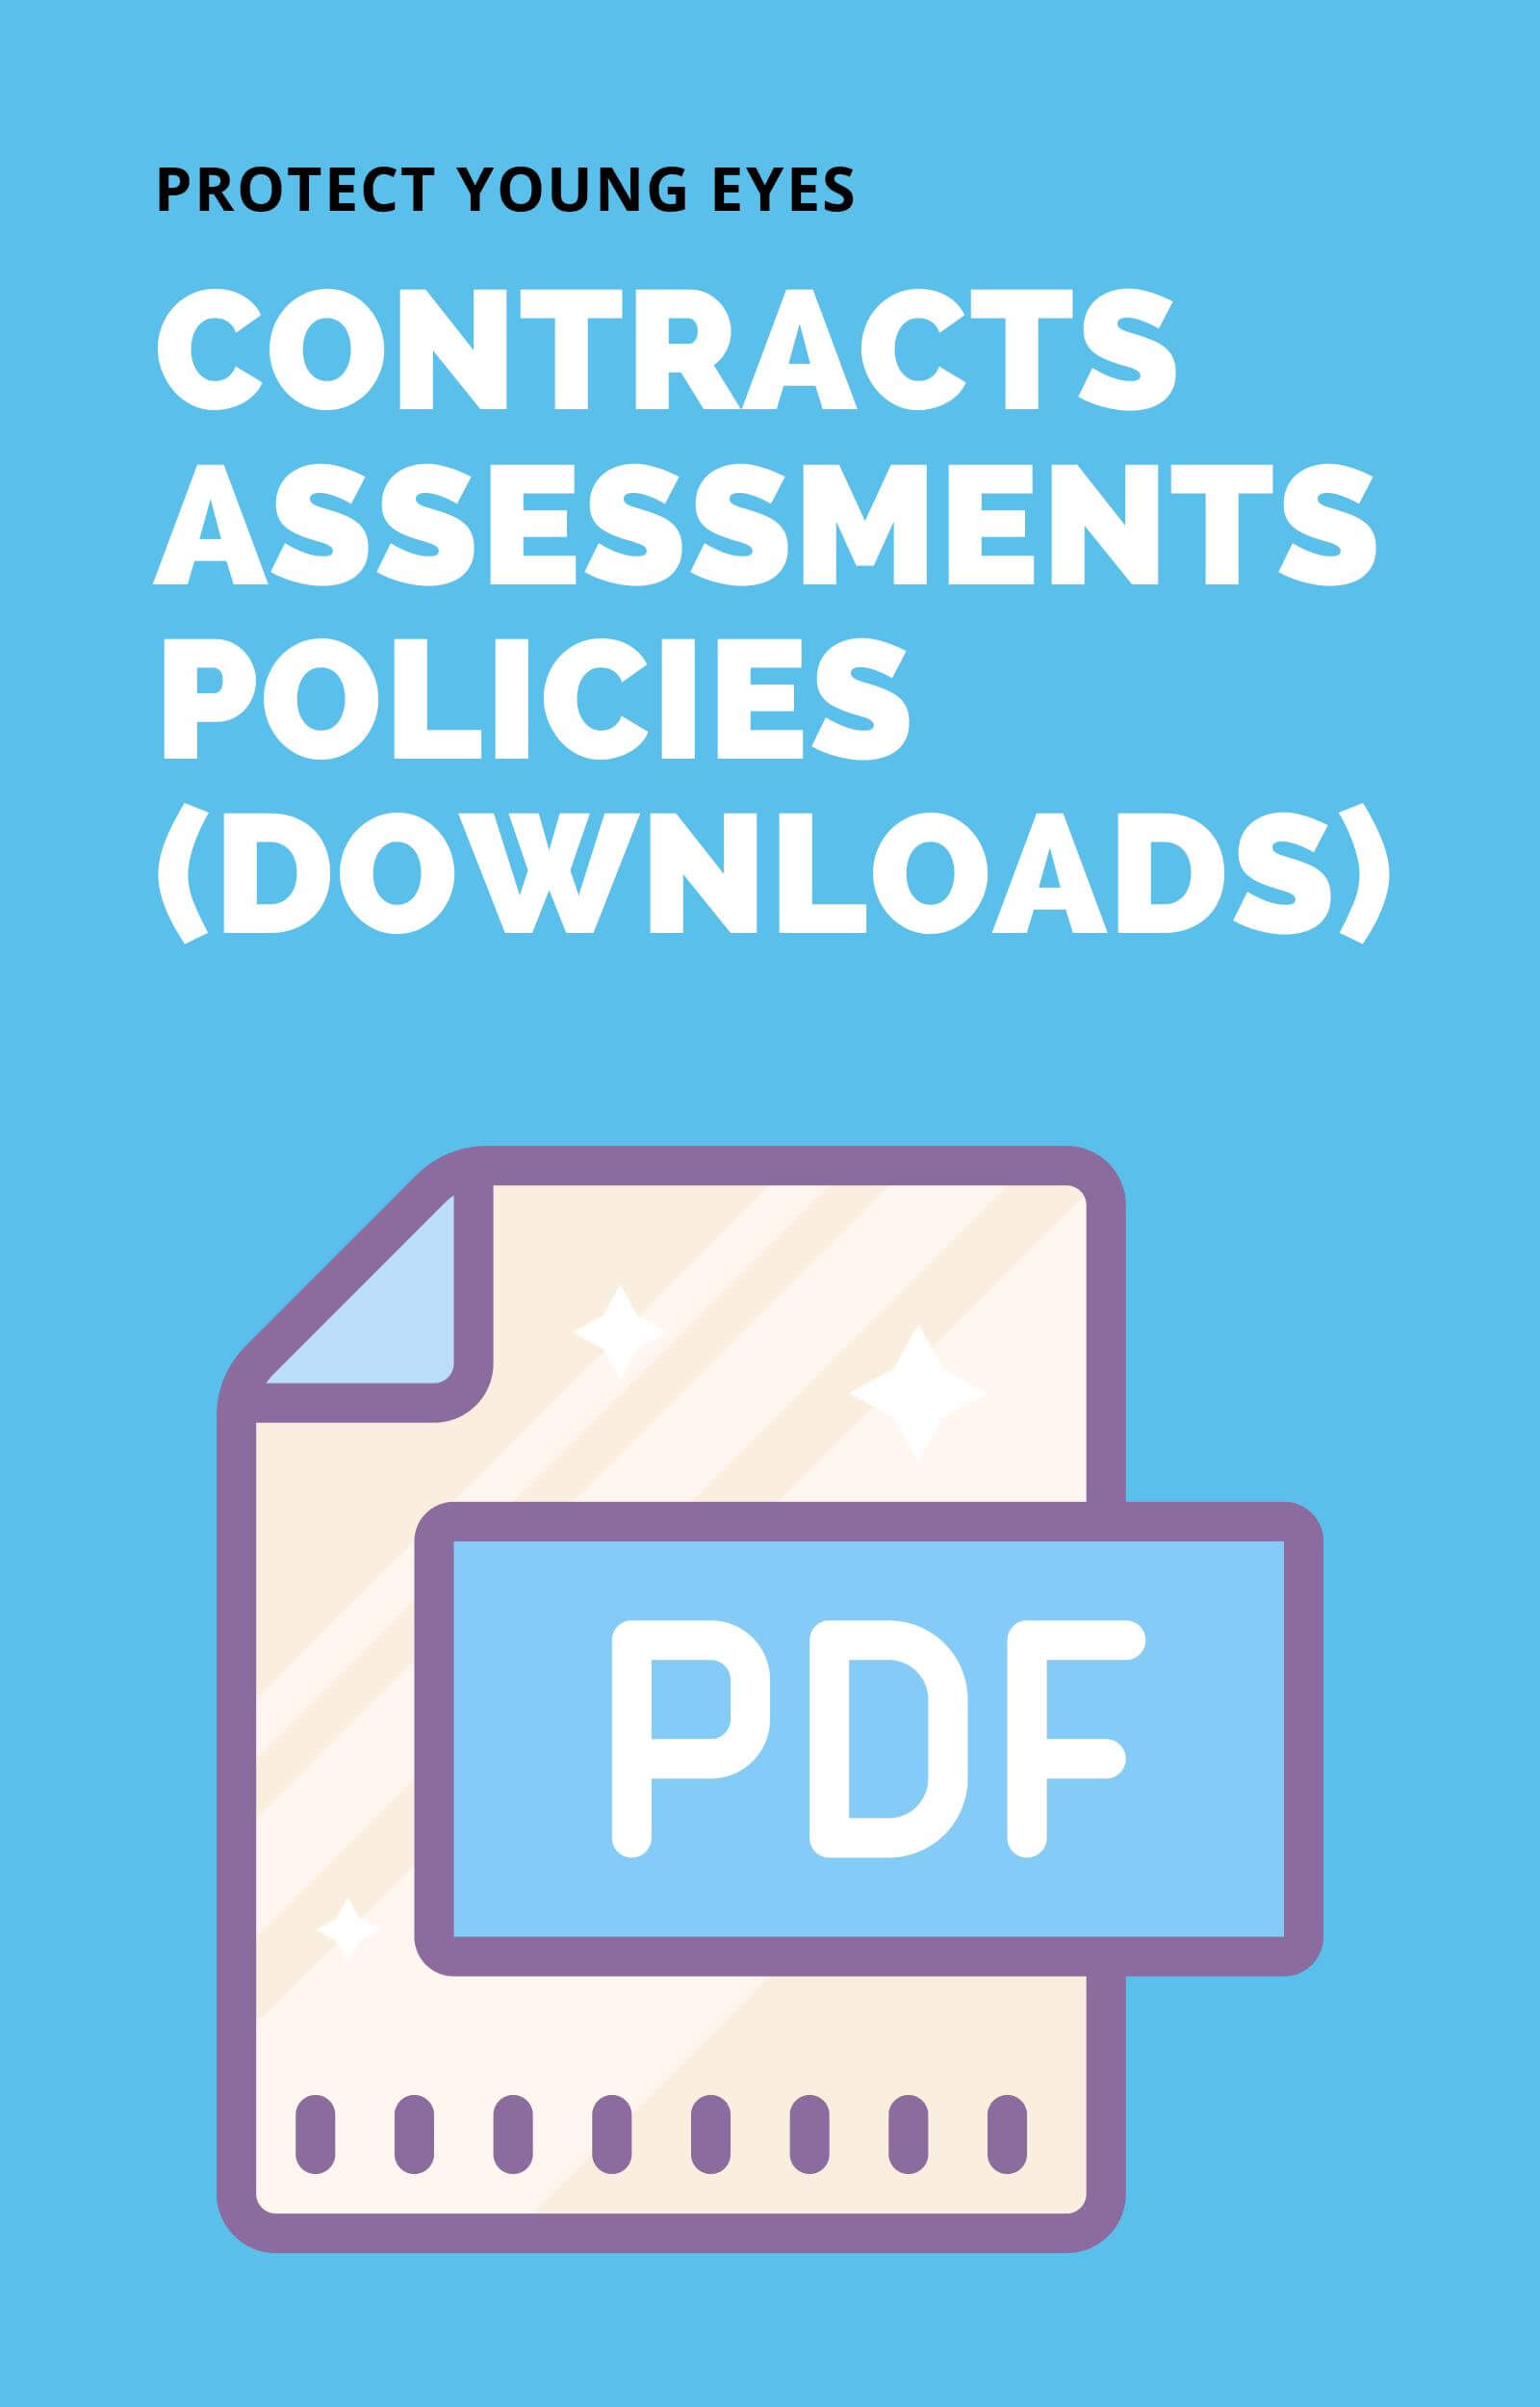 Contracts, Assessments, Policies - PYE